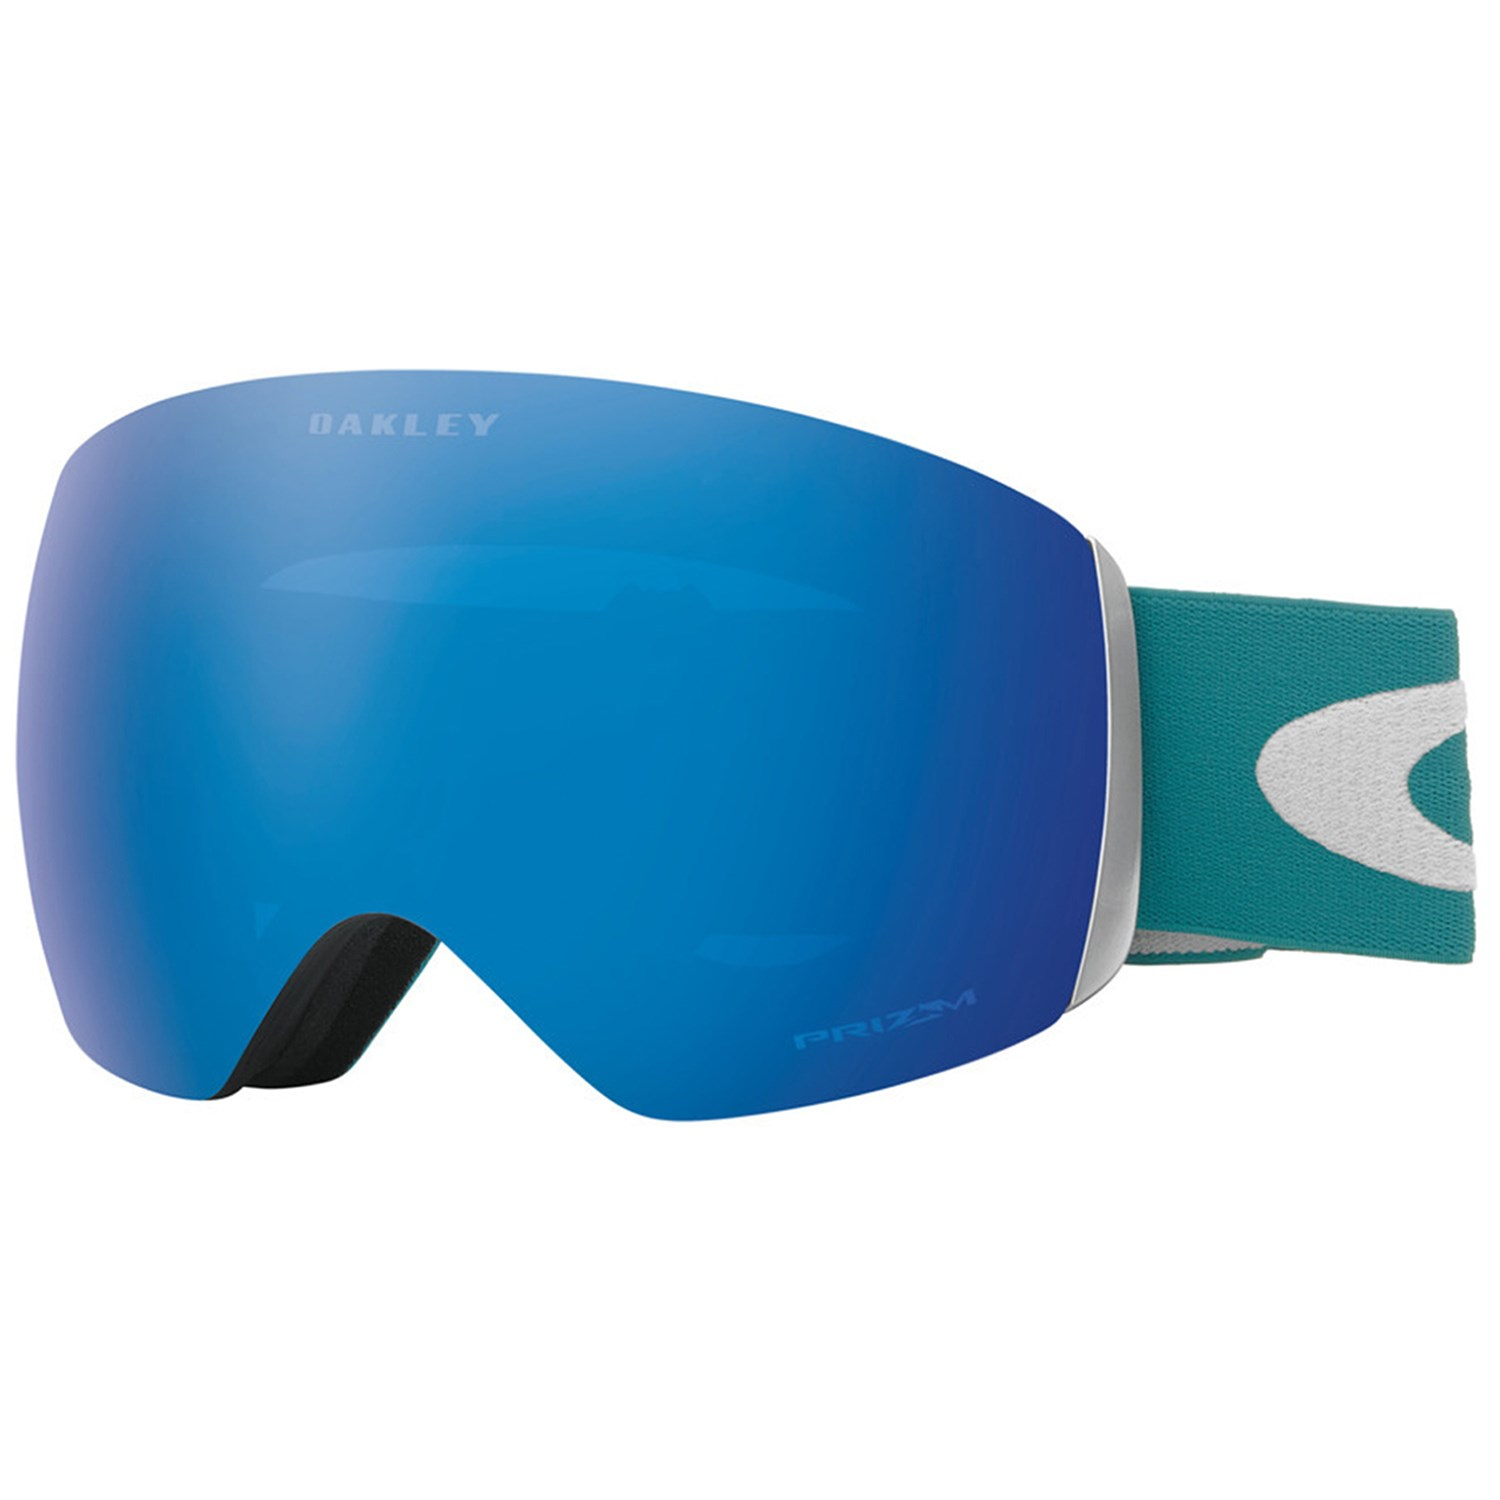 oakley ski lenses  How to Buy Ski \u0026 Snowboard Goggles: Lens, Size \u0026 Fit Guide